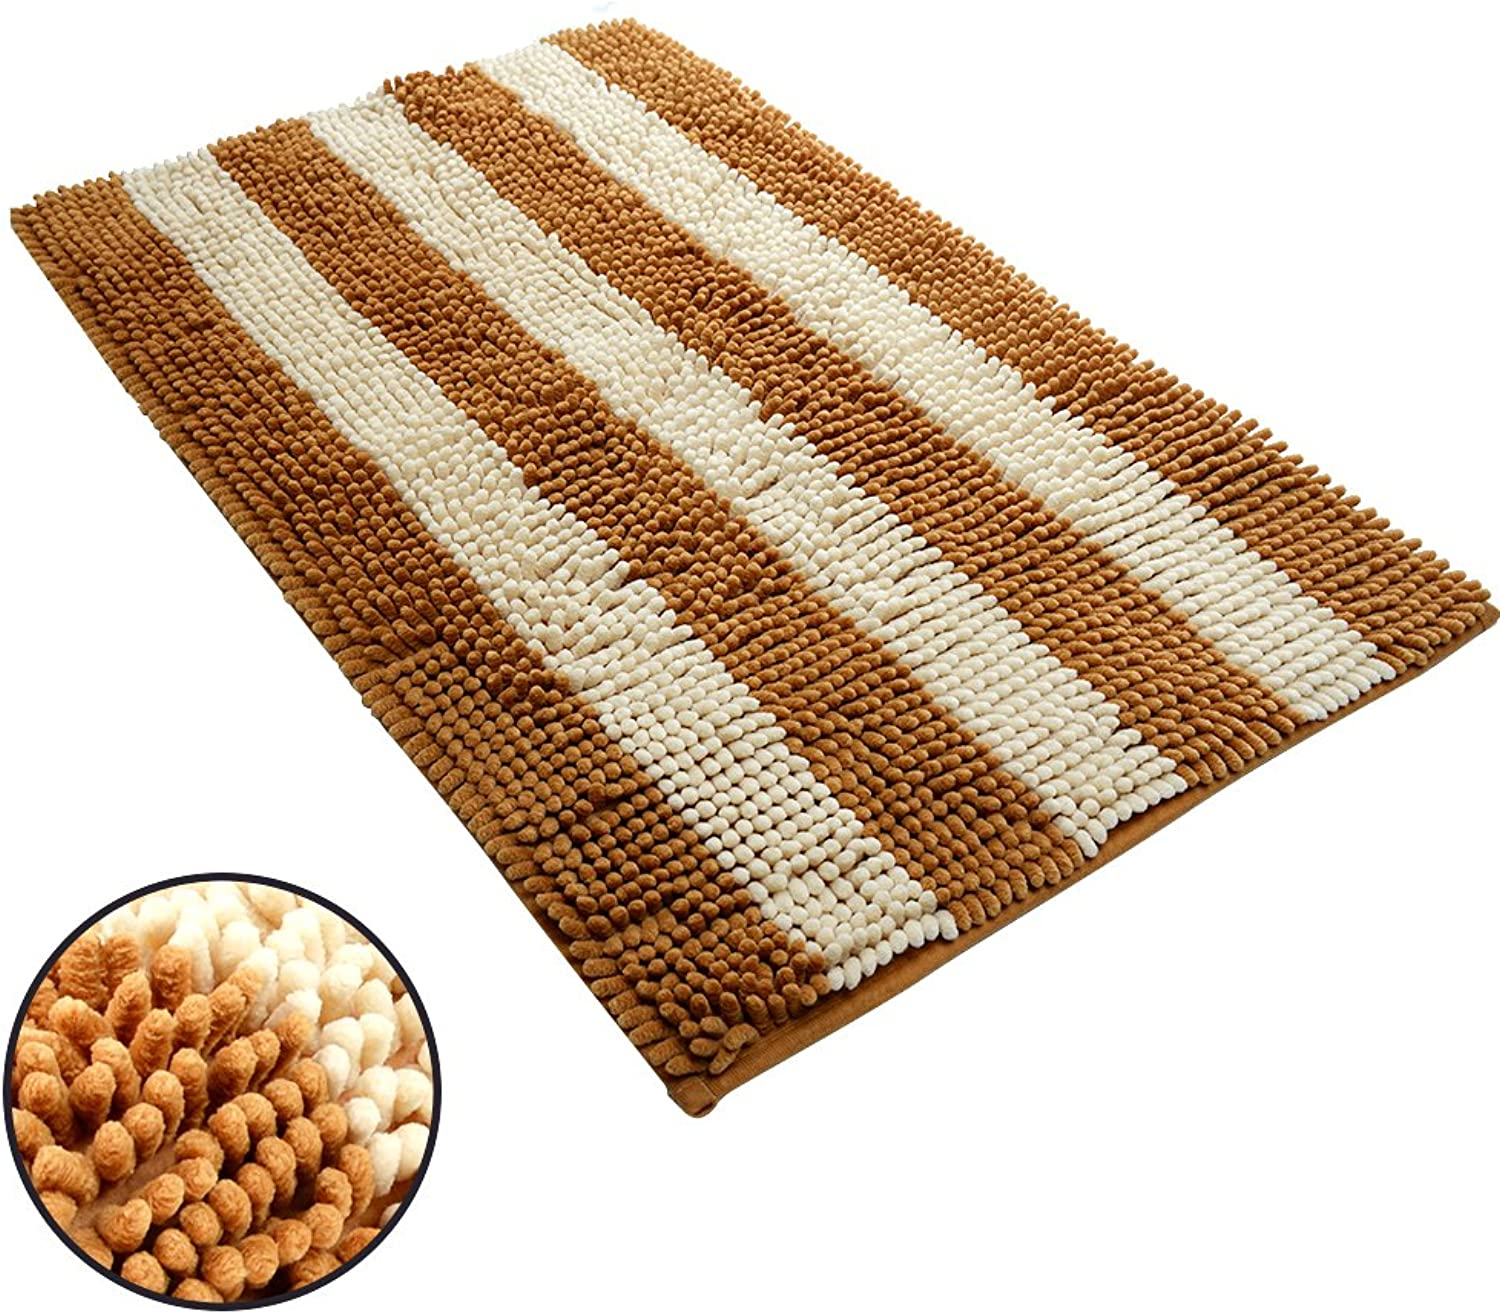 Ihoming Pet Mud Rugs Bowl Bed Mat Absorbent Microfiber Chenille Stripe Dog Cat Door Mat Paw Step Clean Rugs, Khaki Beige, 19 by 31 inches